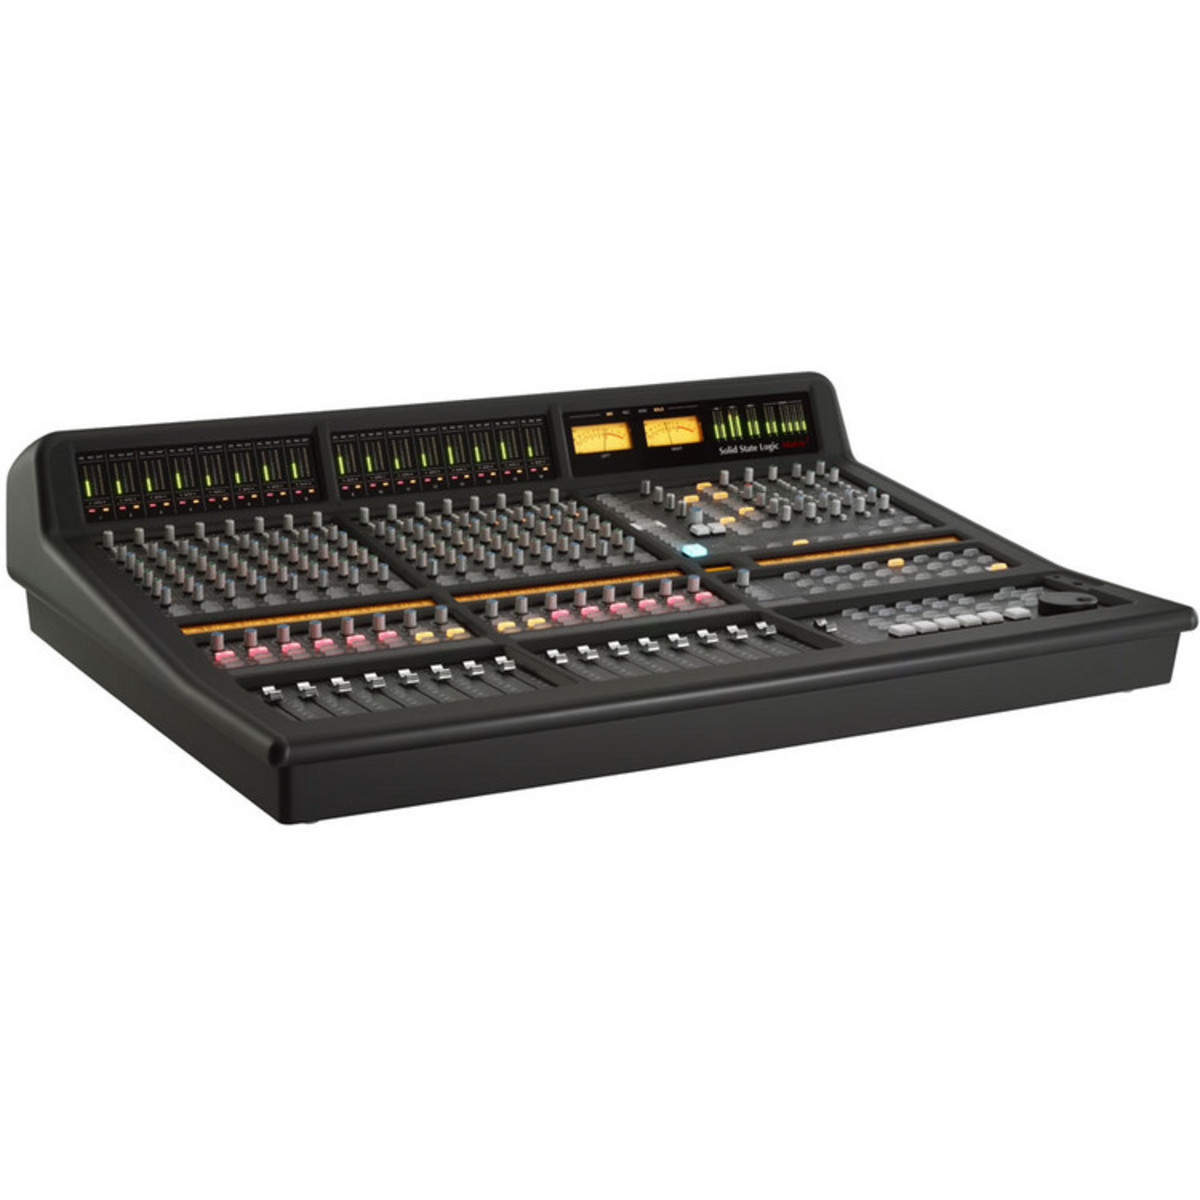 Ssl Matrix 2 Production Console And Daw Controller At